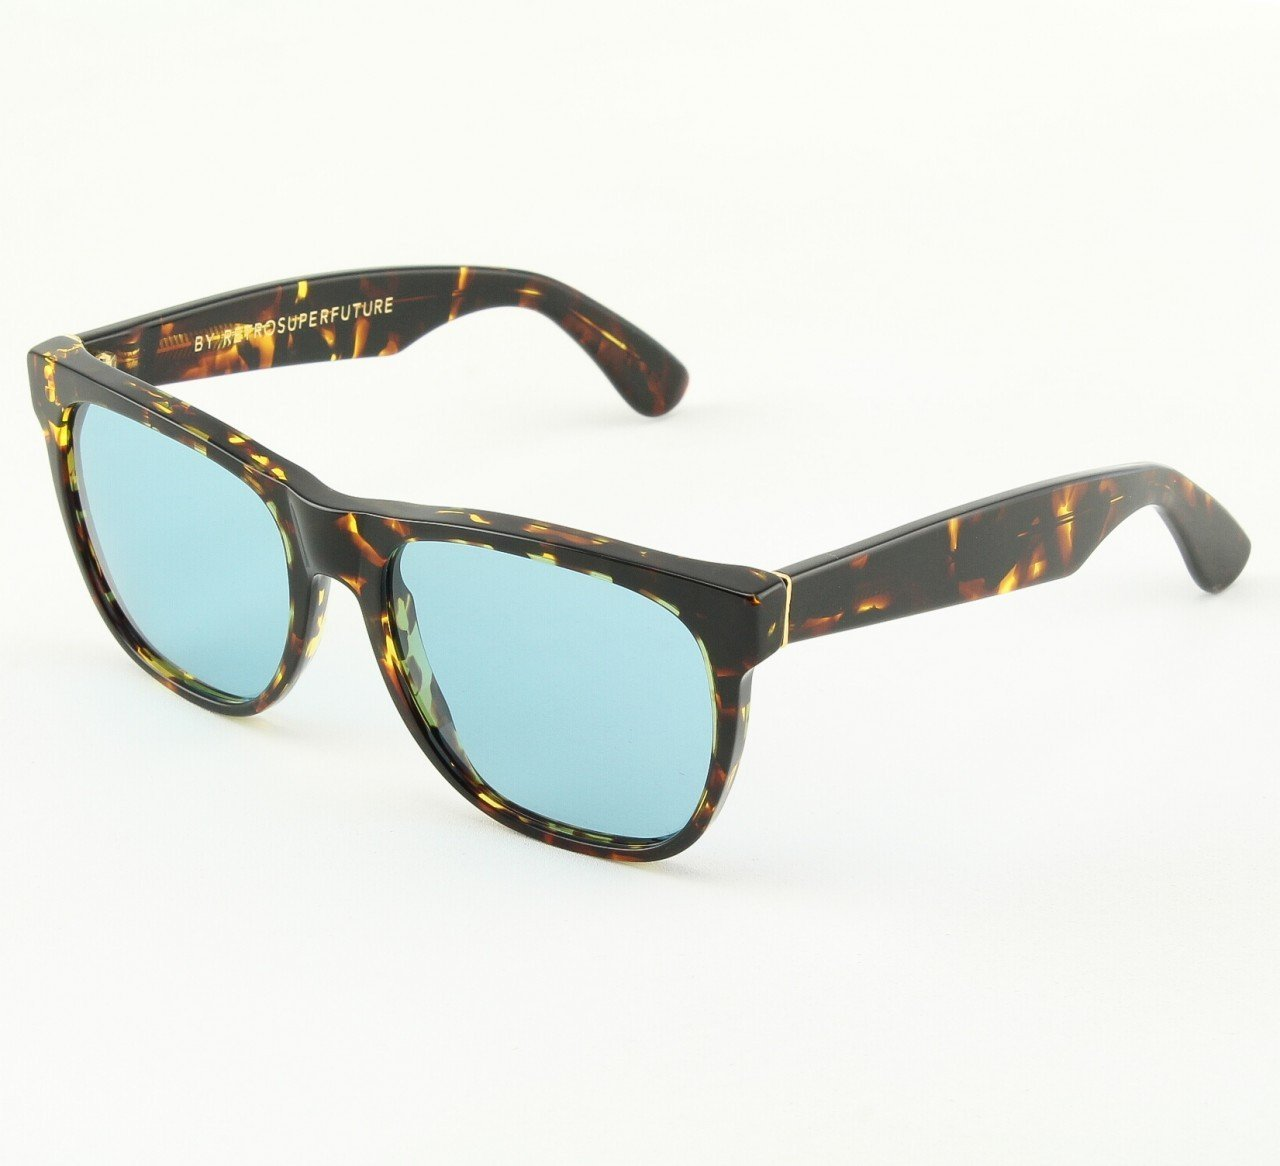 Super Classic 785/2T Sunglasses Golden with Blue Zeiss Lenses by RETROSUPERFUTURE